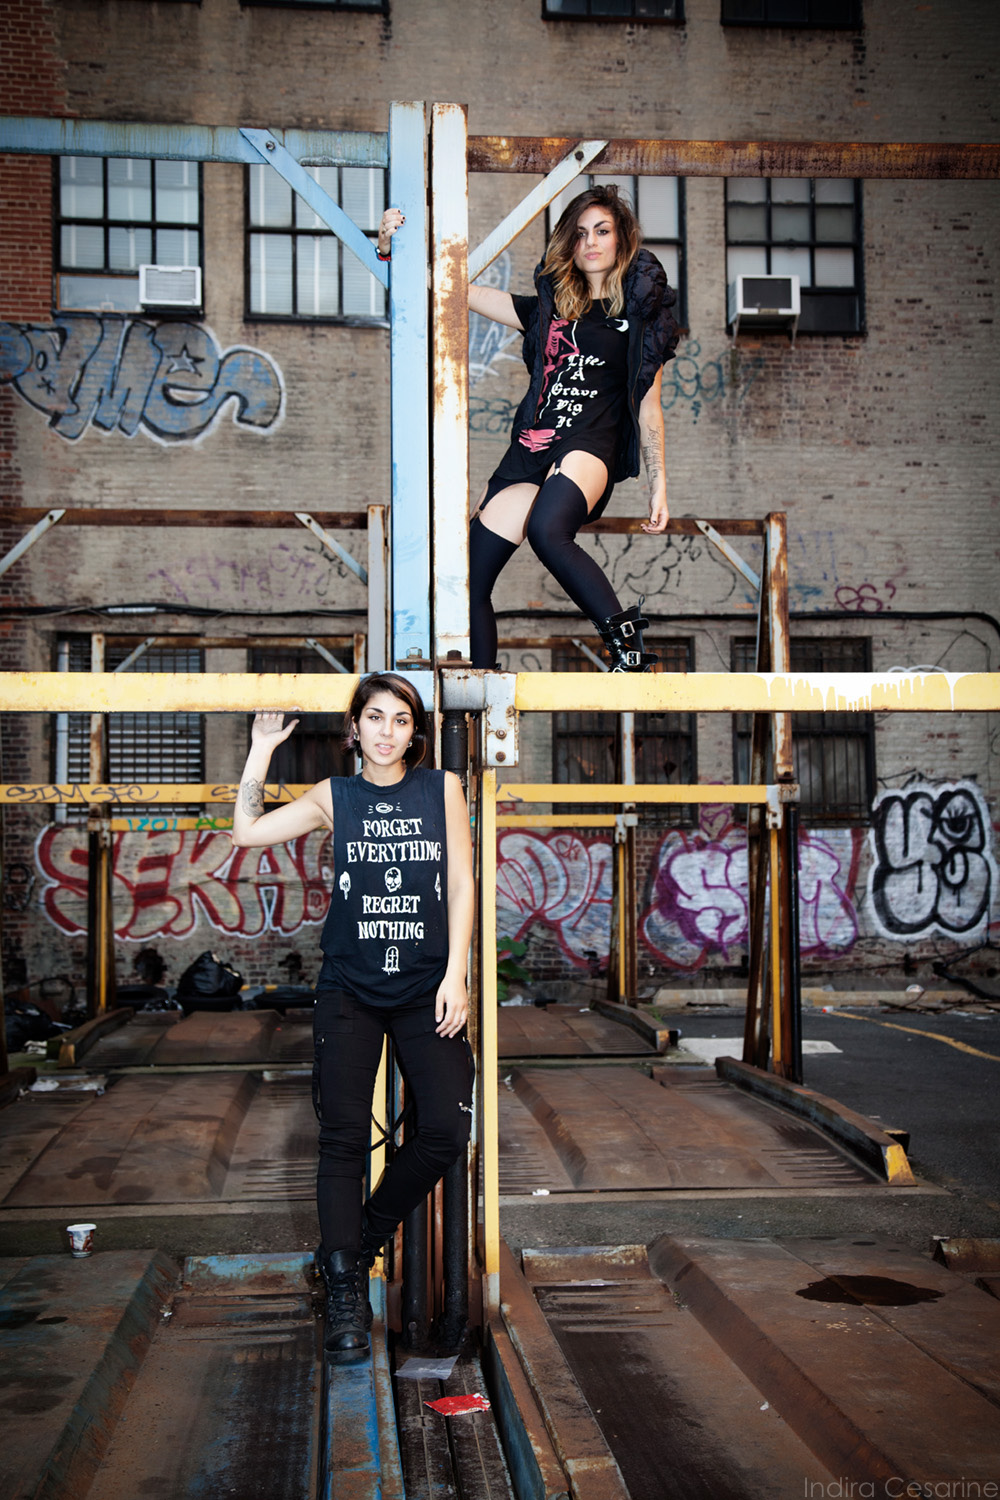 Krewella-Photography-by-Indira-Cesarine-008.jpg